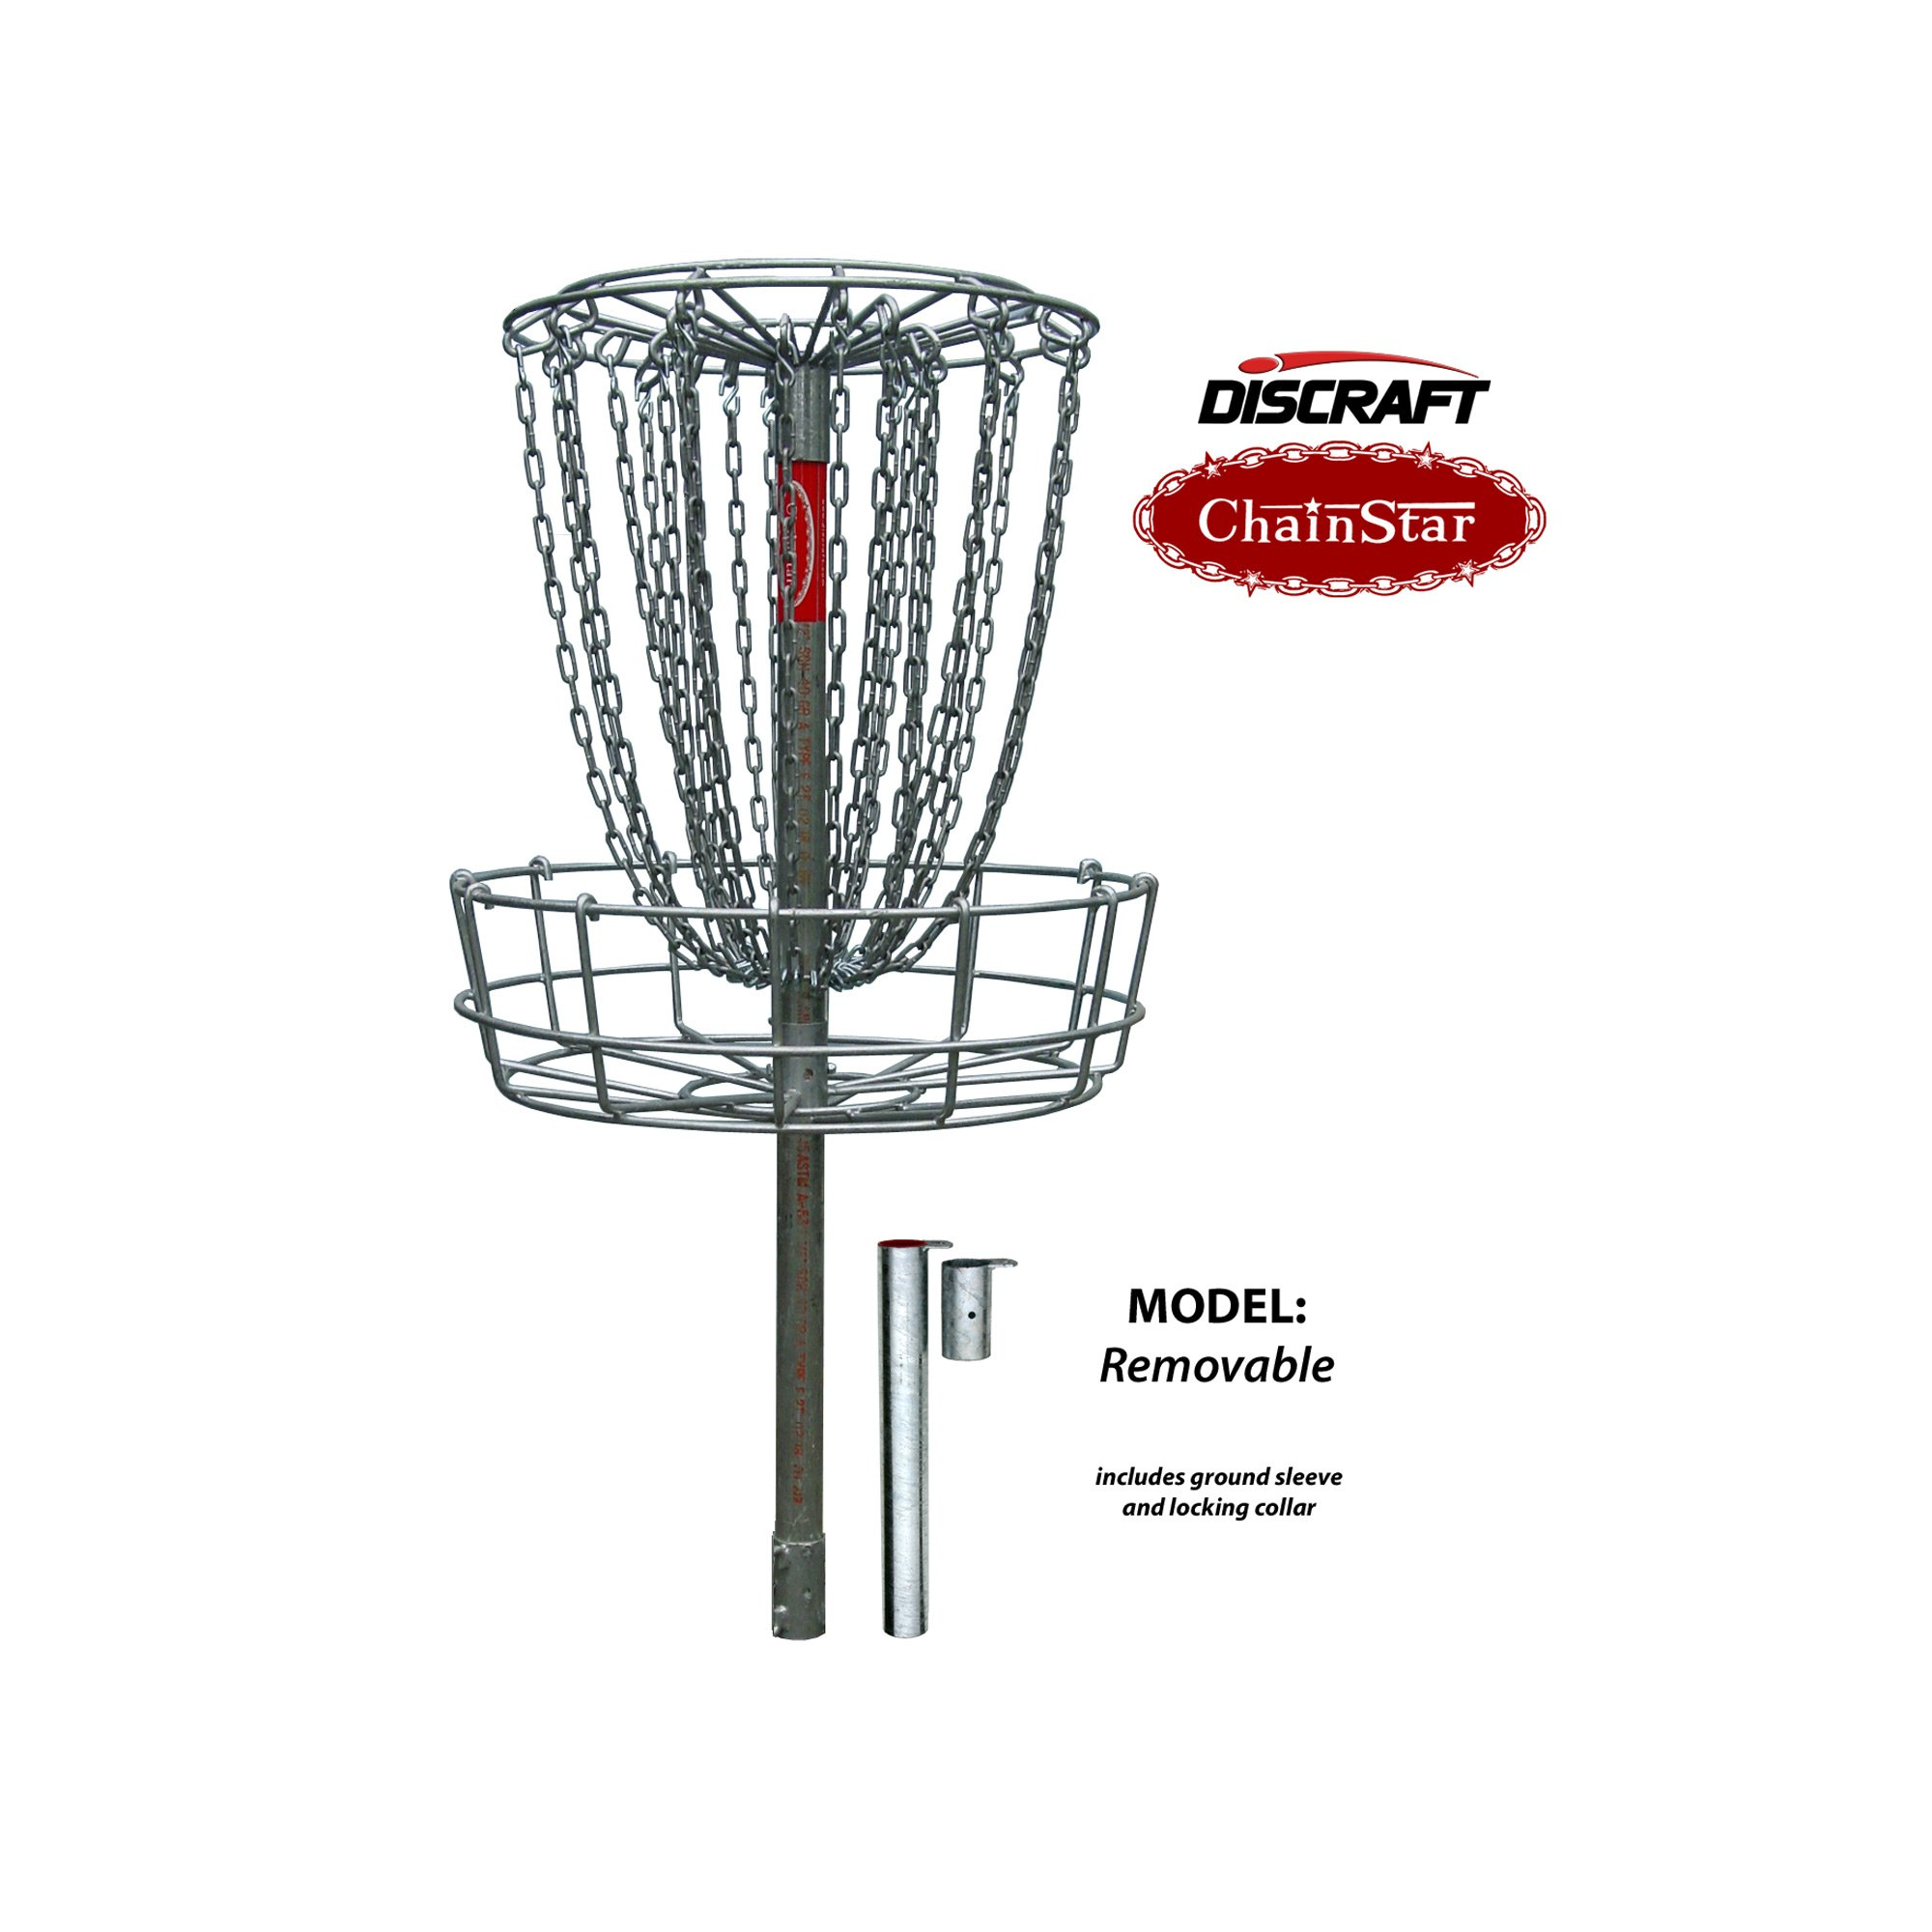 Discraft Removable Chainstar Basket w/ Pole by Discraft